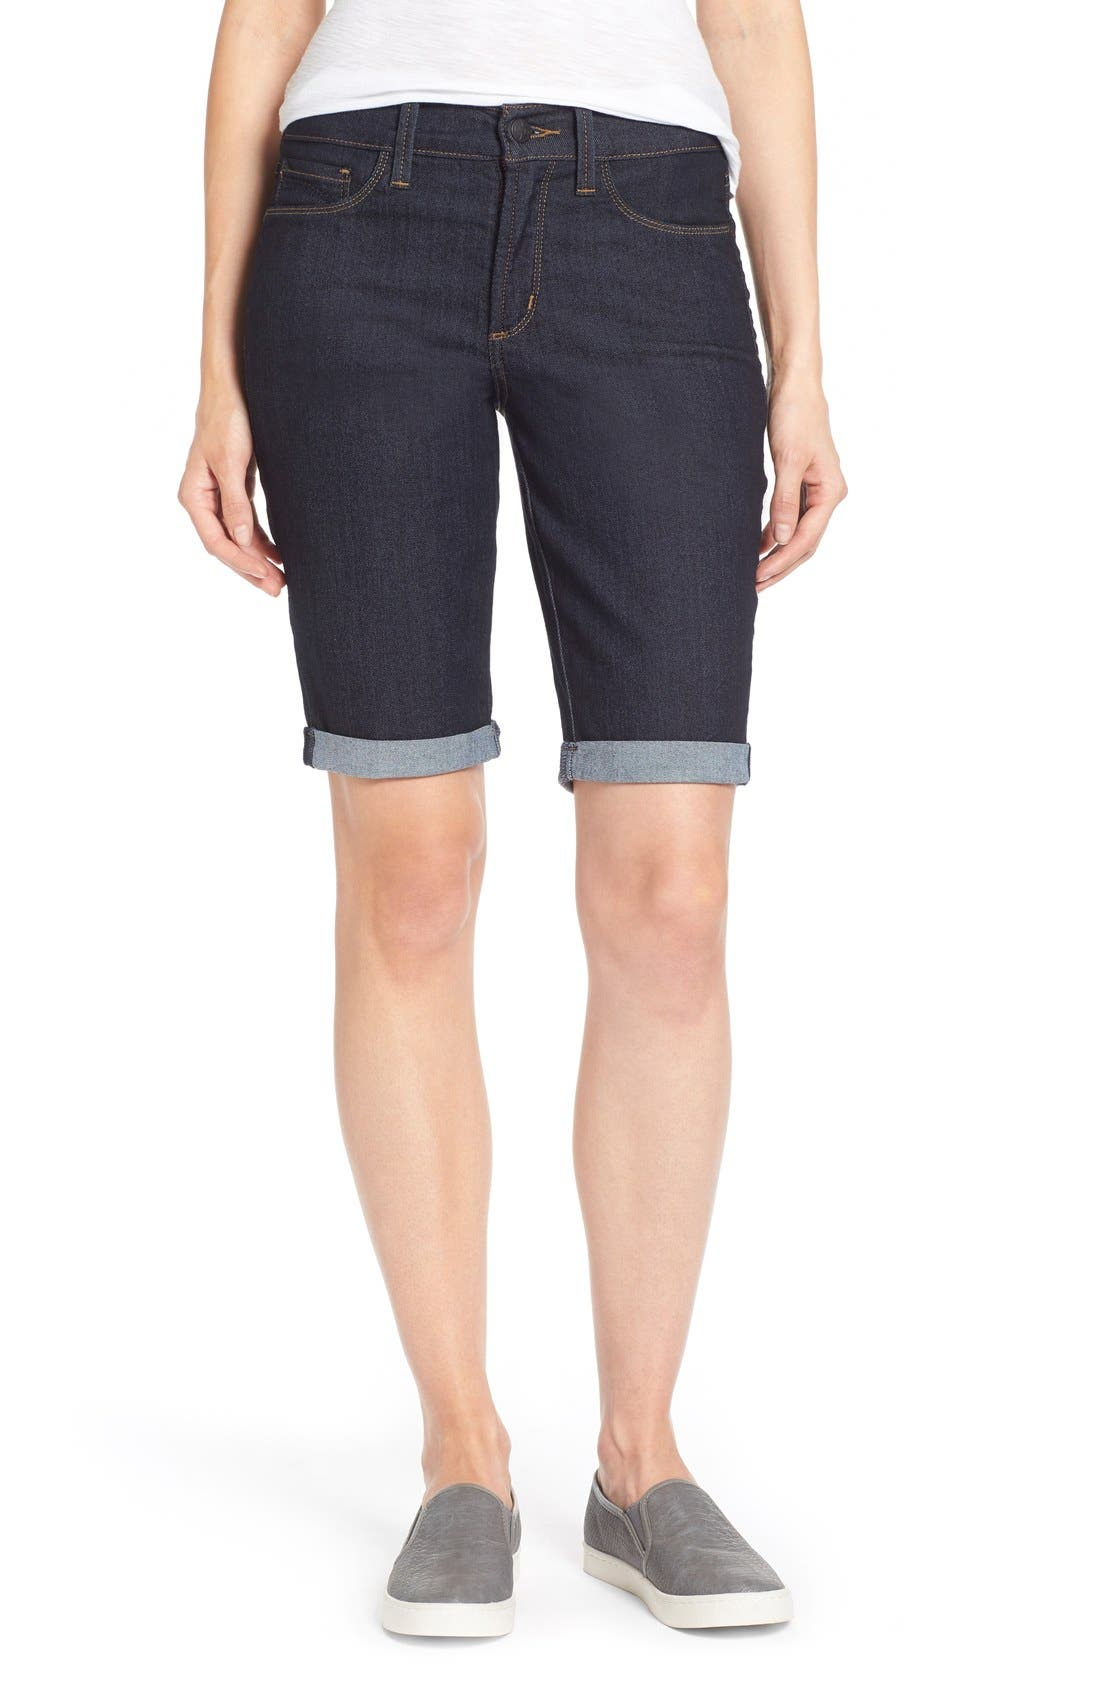 Alternate Image 1 Selected - NYDJ 'Briella' Stretch Roll Cuff Denim Shorts (Regular & Petite)